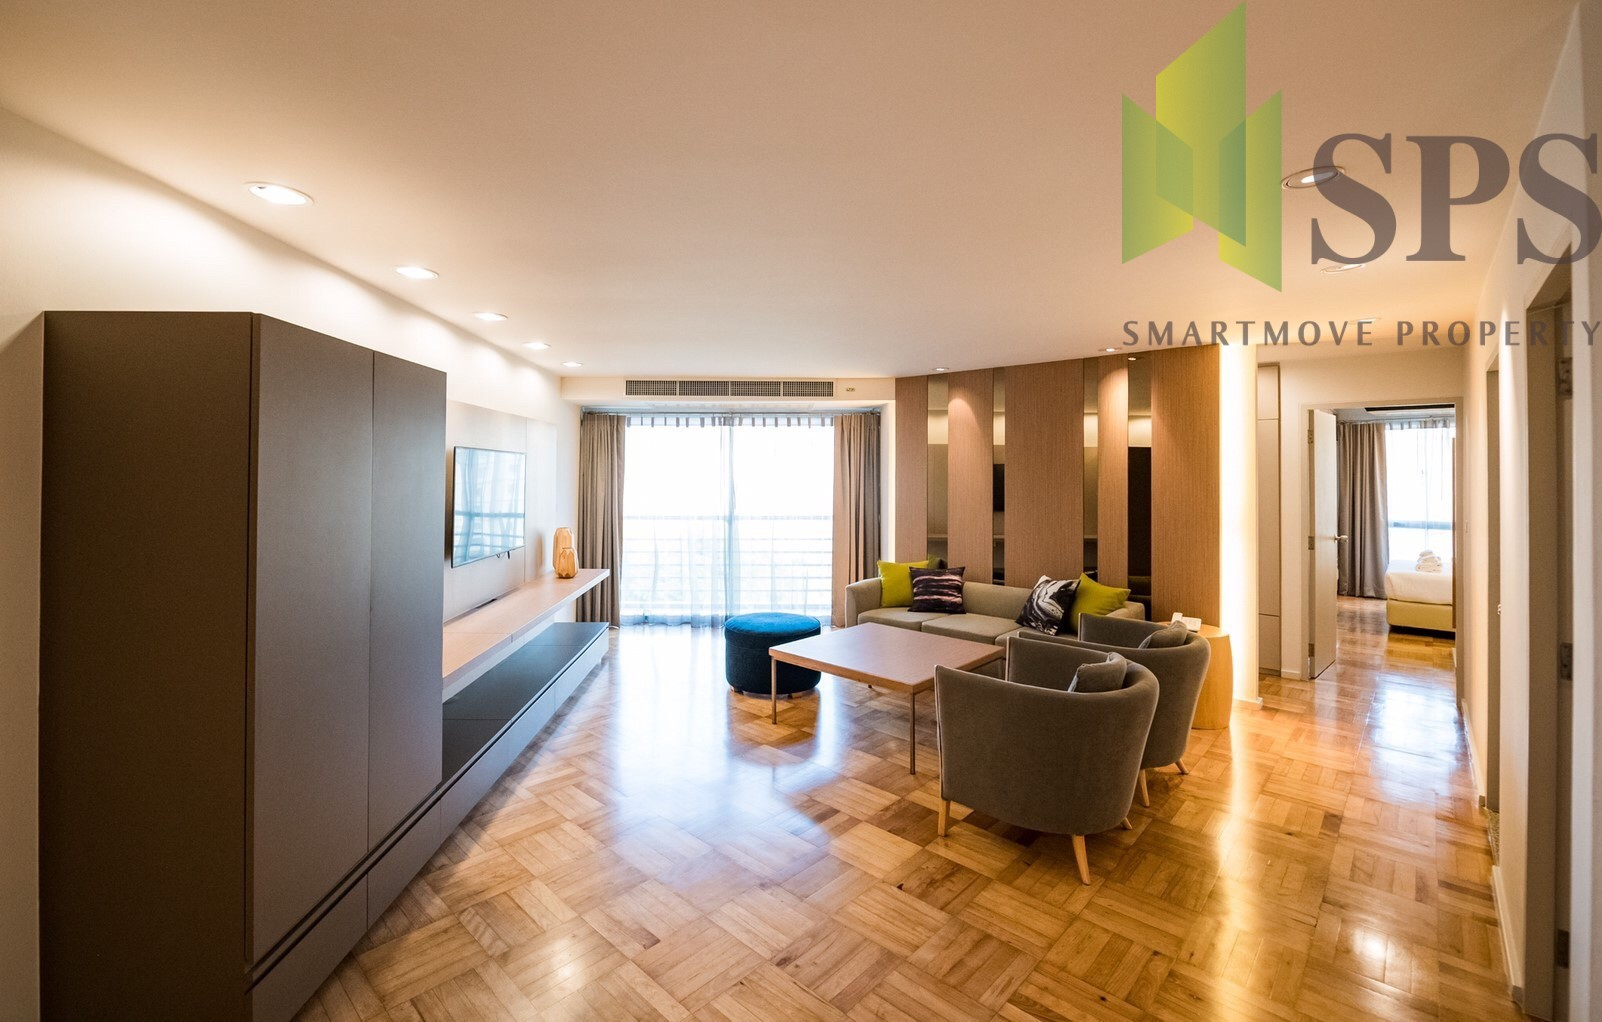 BANGKOK GARDEN APARTMENT FOR RENT Perfect blend of serenity, comfort and privacy near Sathorn (SPS-LN-BKGDN-10)